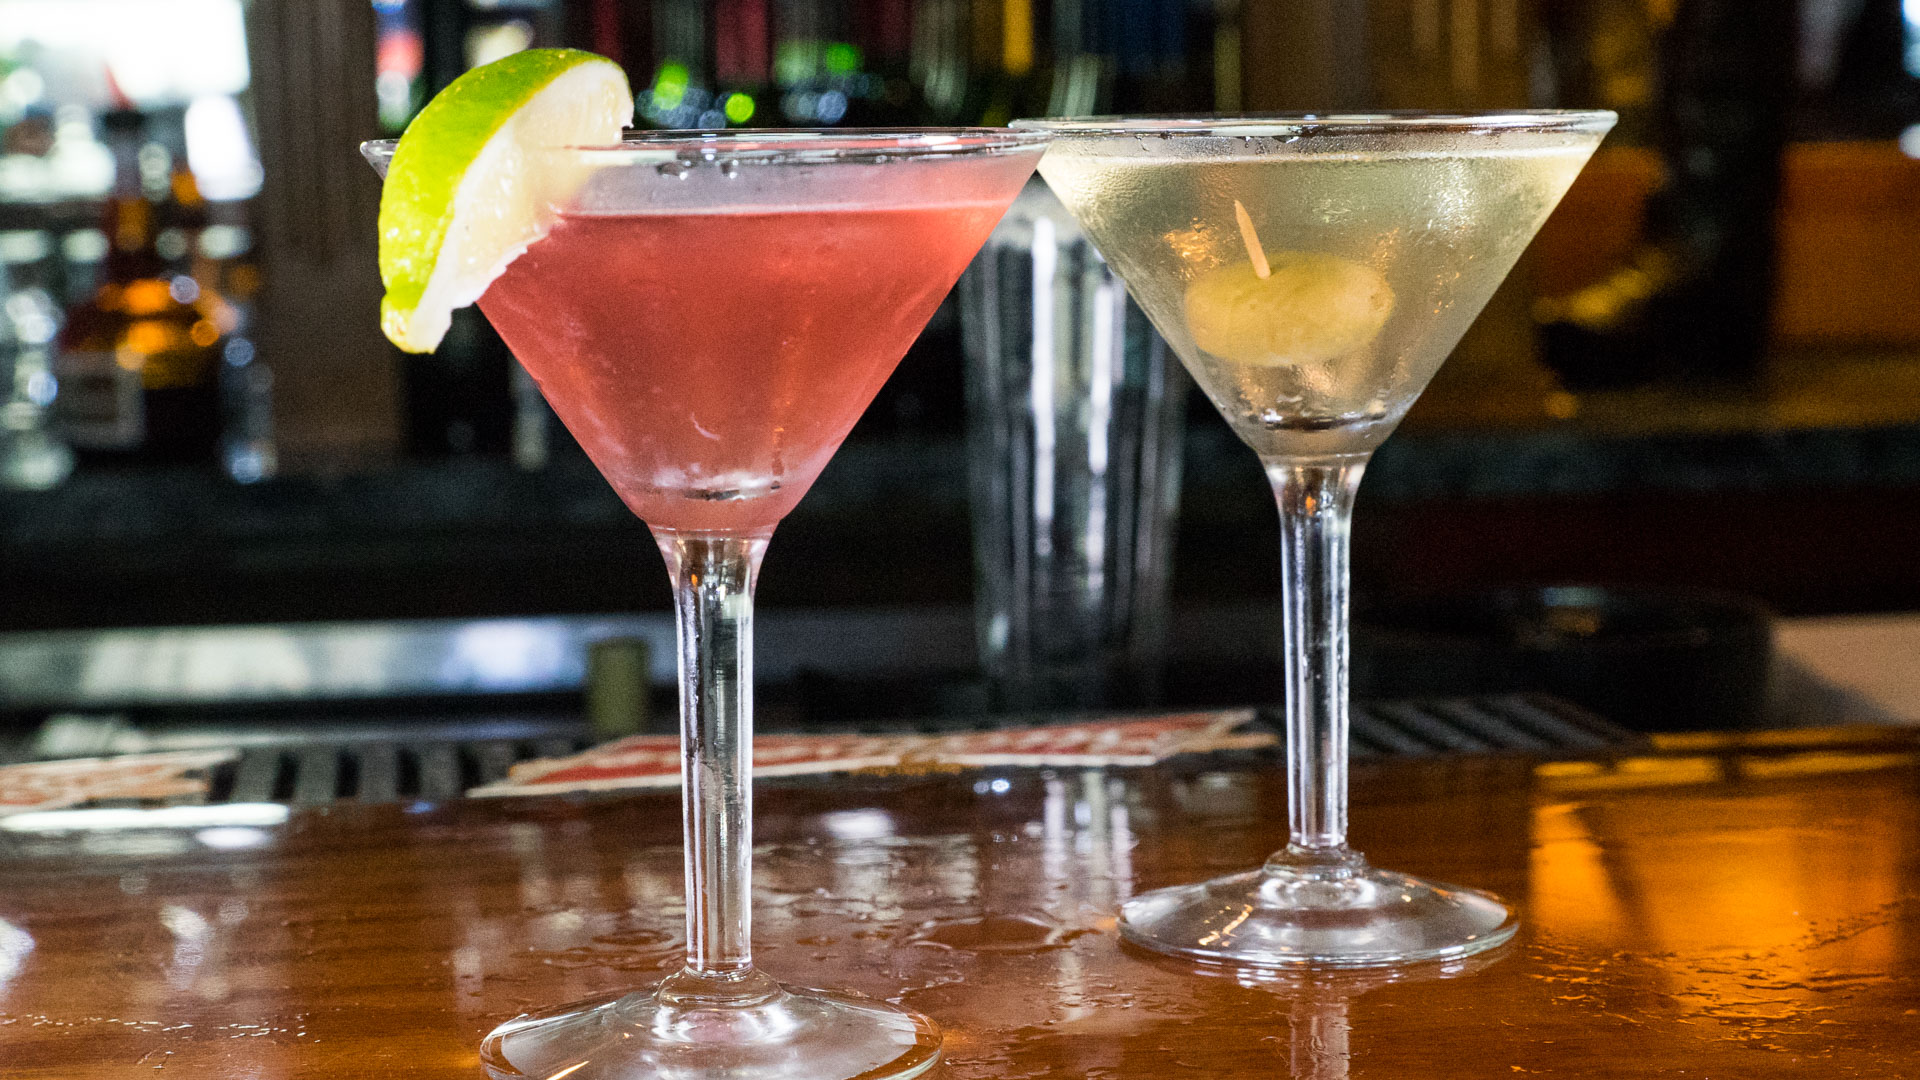 a cosmopolitan with a lime and a dirty martini with olives on the bar